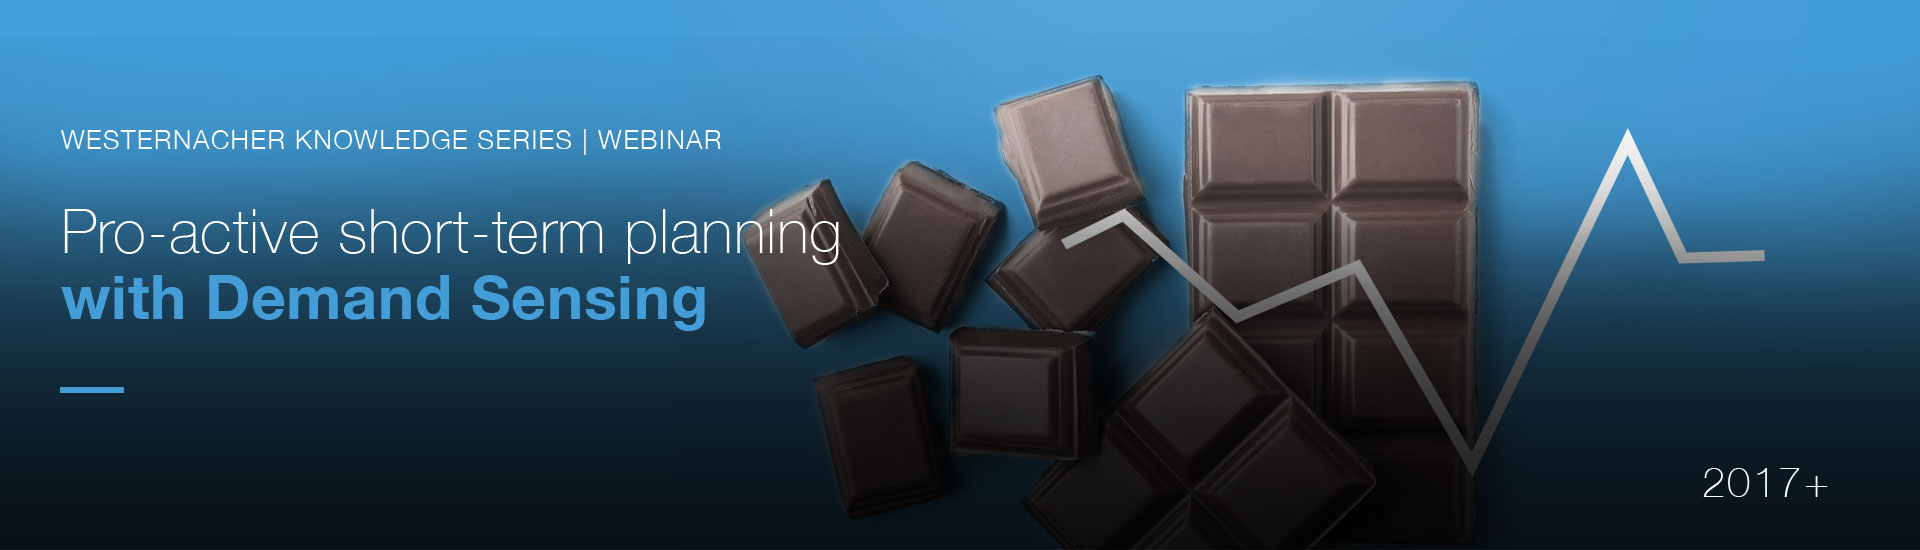 Westernacher Webinar: Integrated Business Planning | westernacher-consulting.com